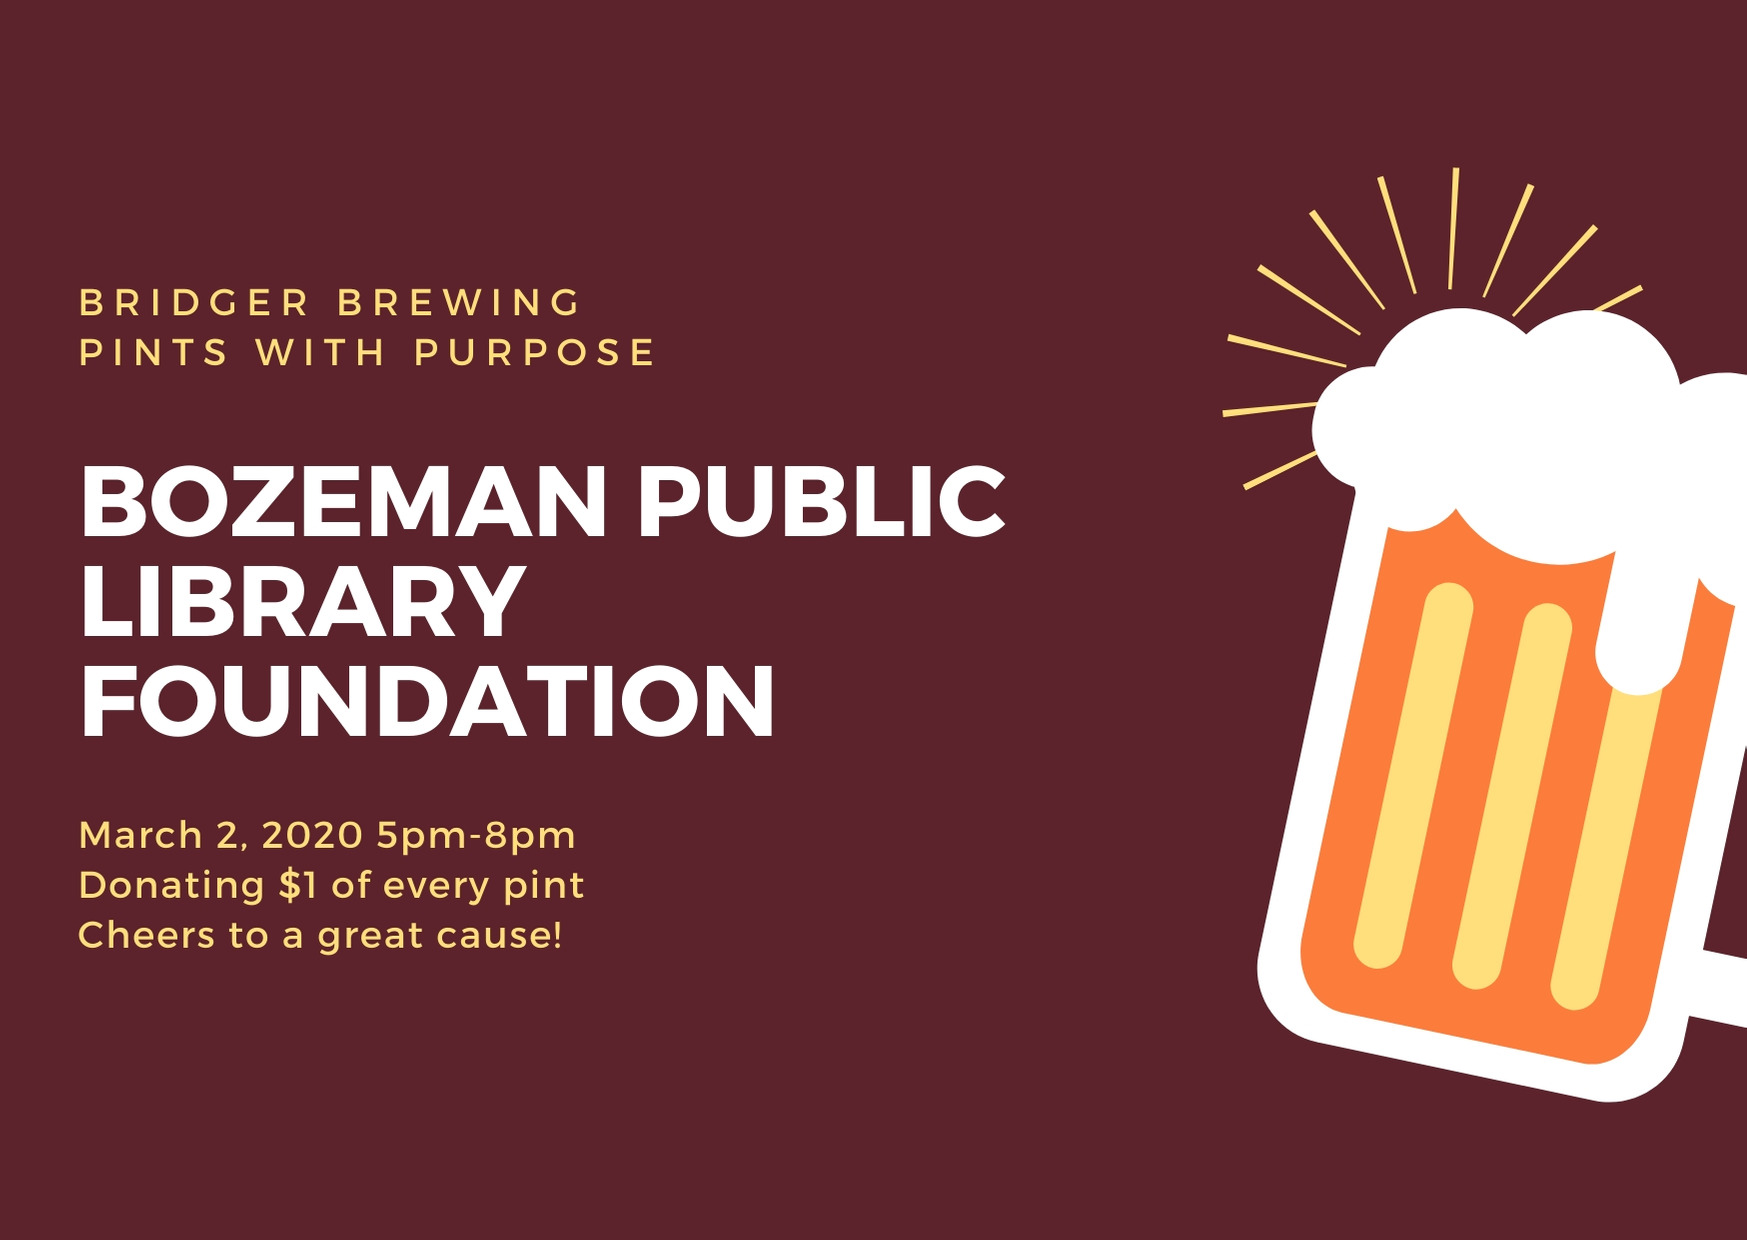 Pints with Purpose · Bozeman Public Library Foundation